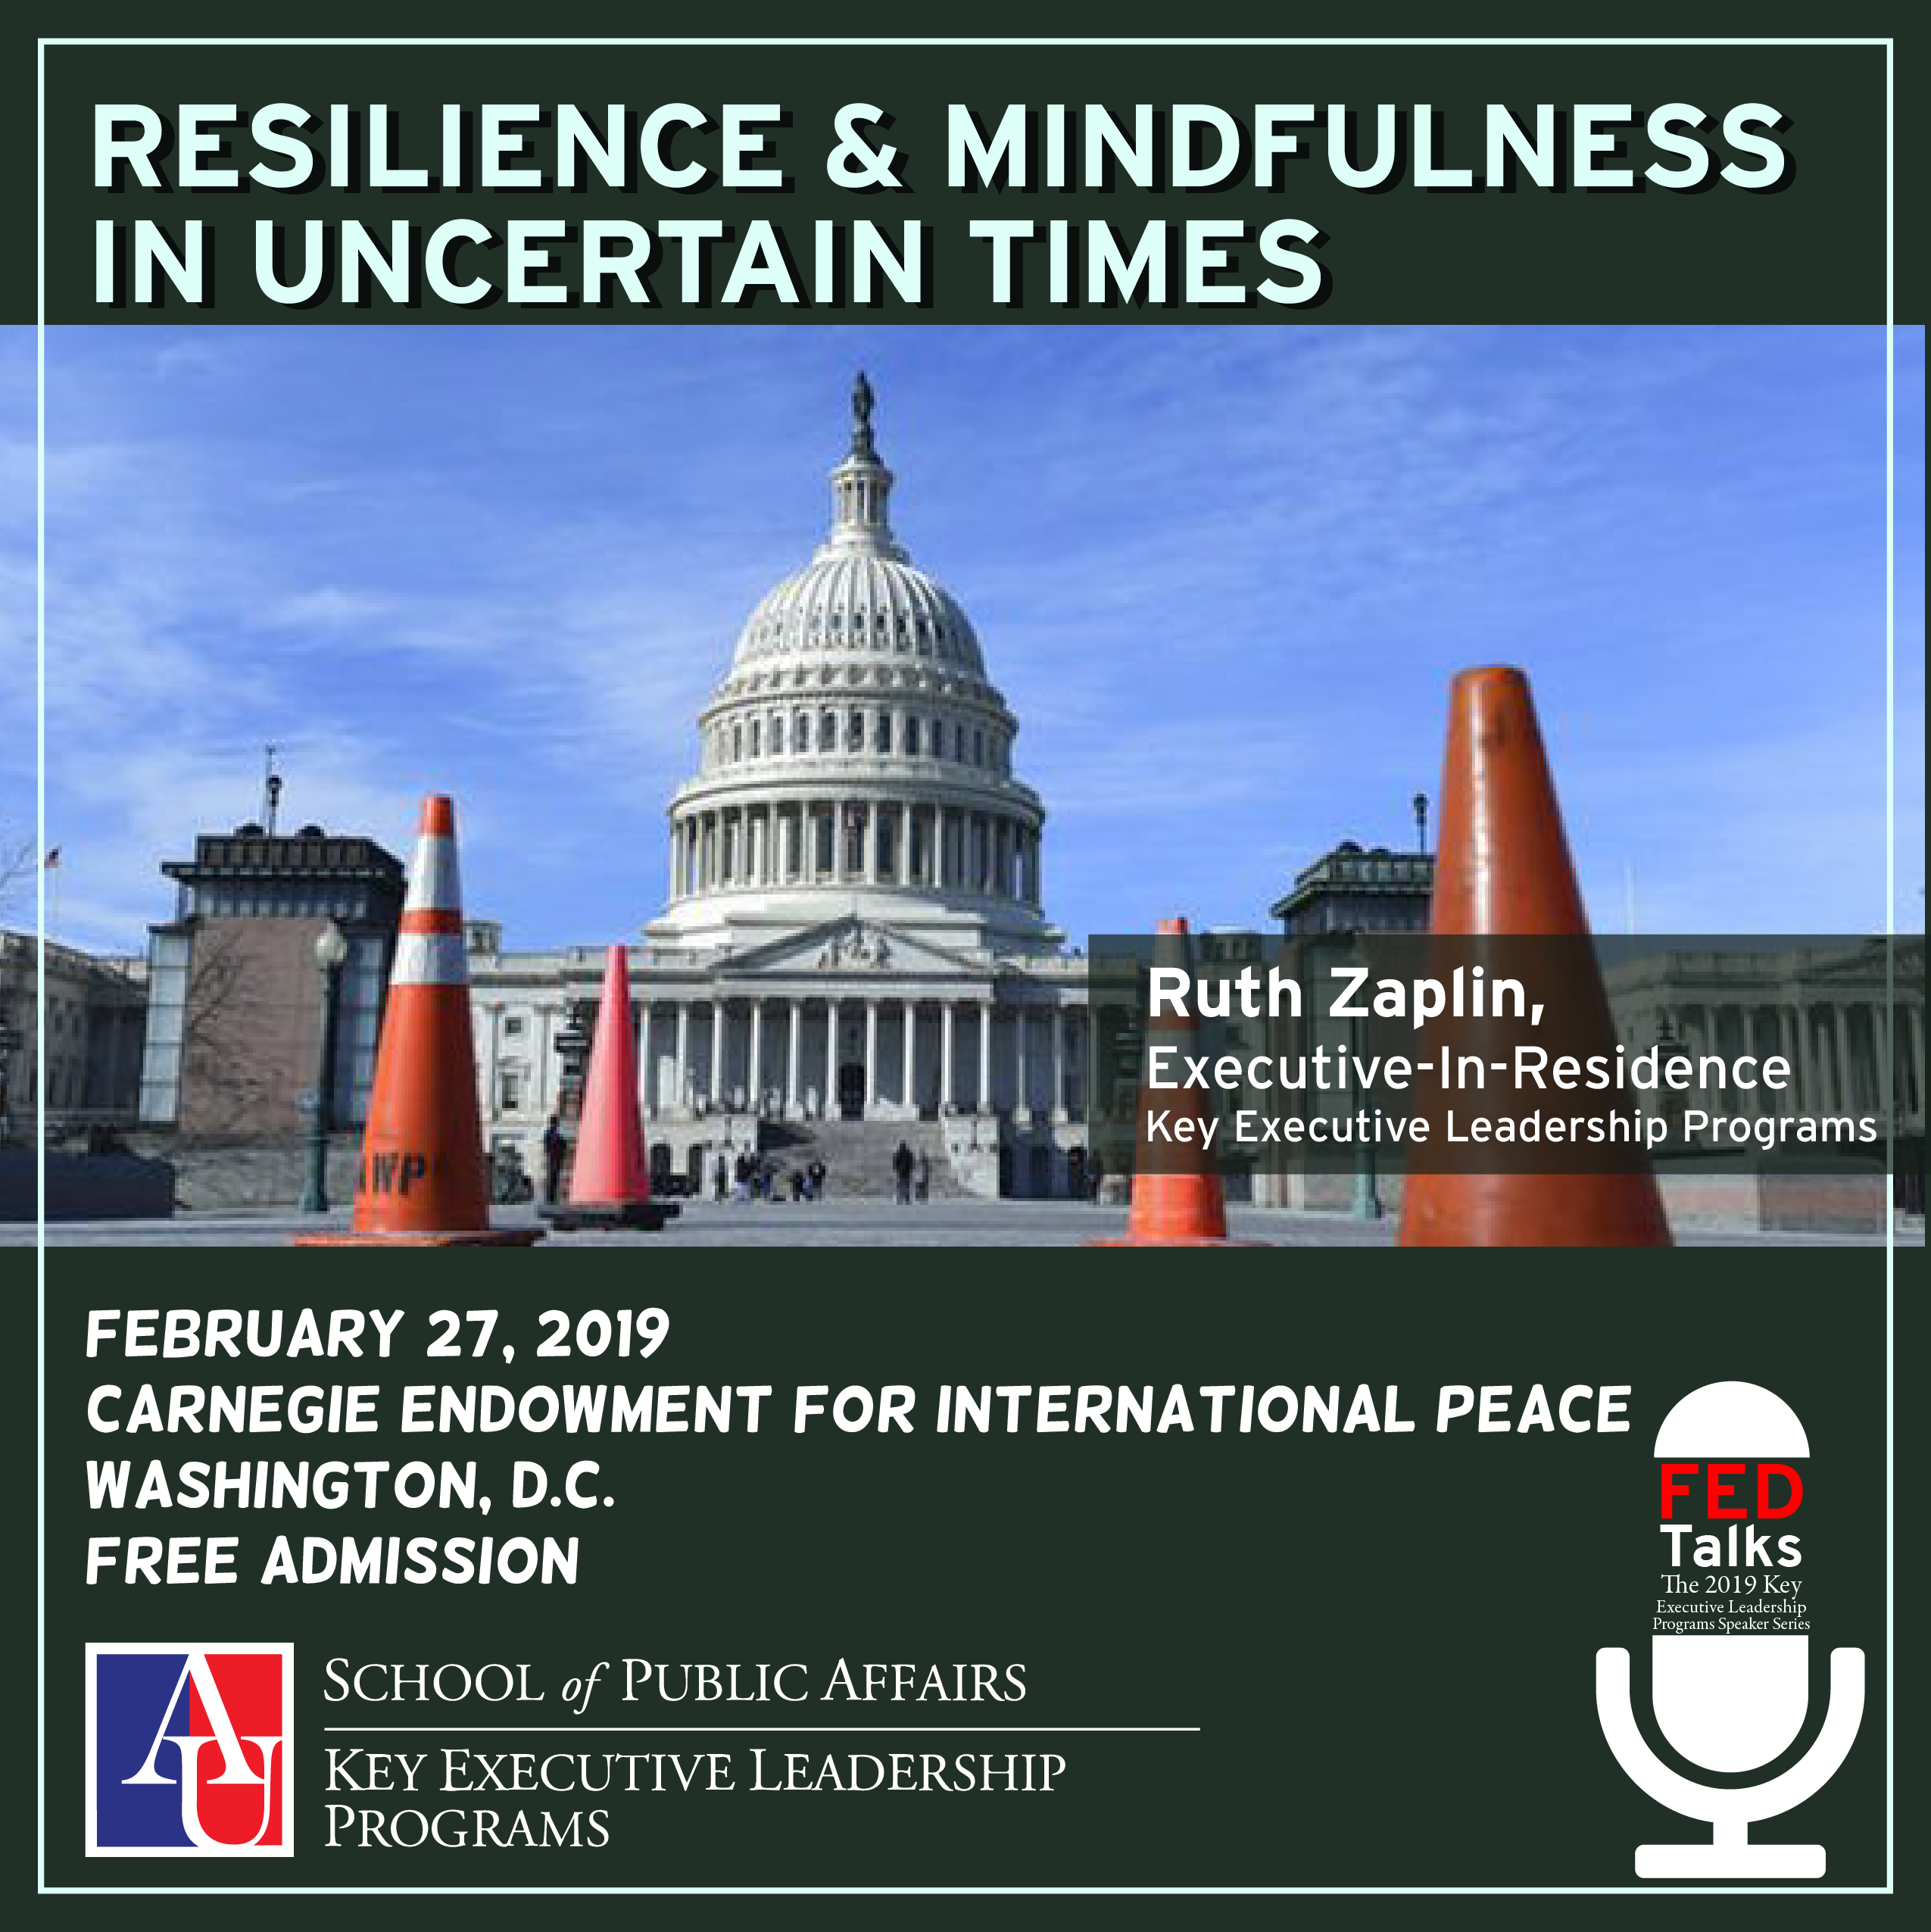 FEDTalks: Resilience and Mindfulness in Uncertain Times; February 27th from 5:00 to 6:30 p.m. at the Carnegie Endowment for International Peace Root Room